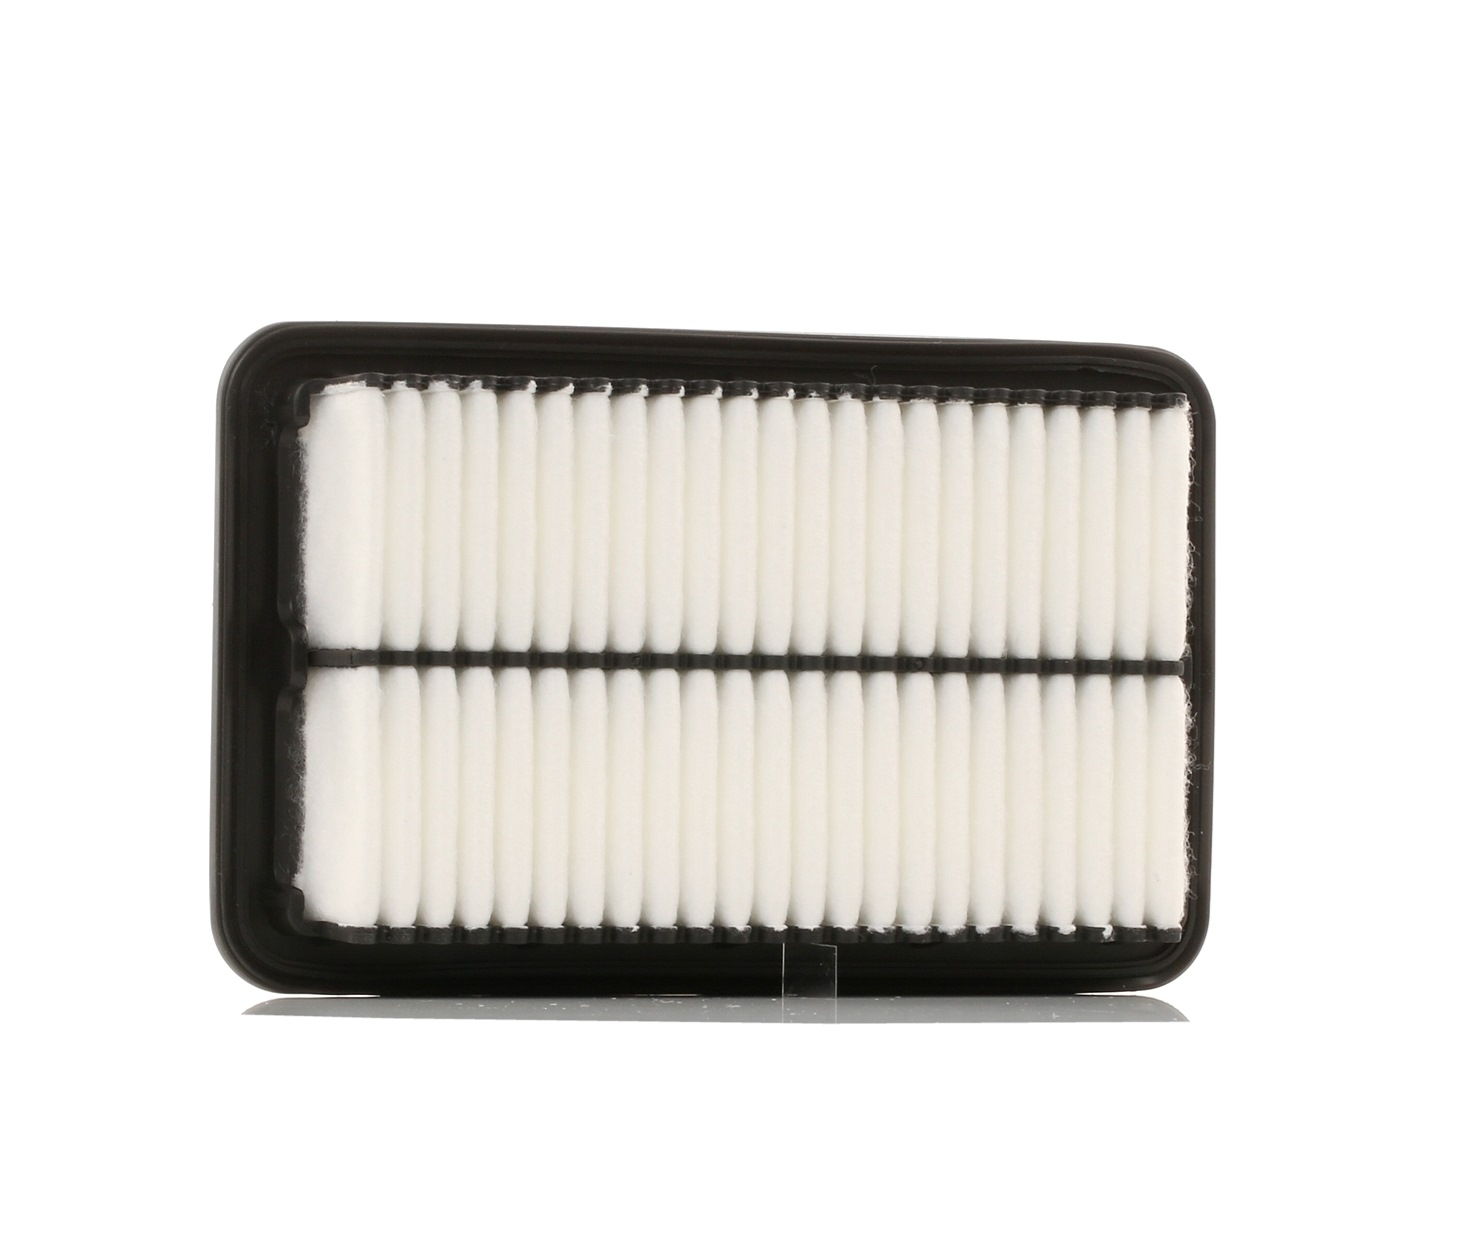 Image of PURFLUX Air Filter KIA,HYUNDAI A1551 2811304000,281131Y100 Engine Filter